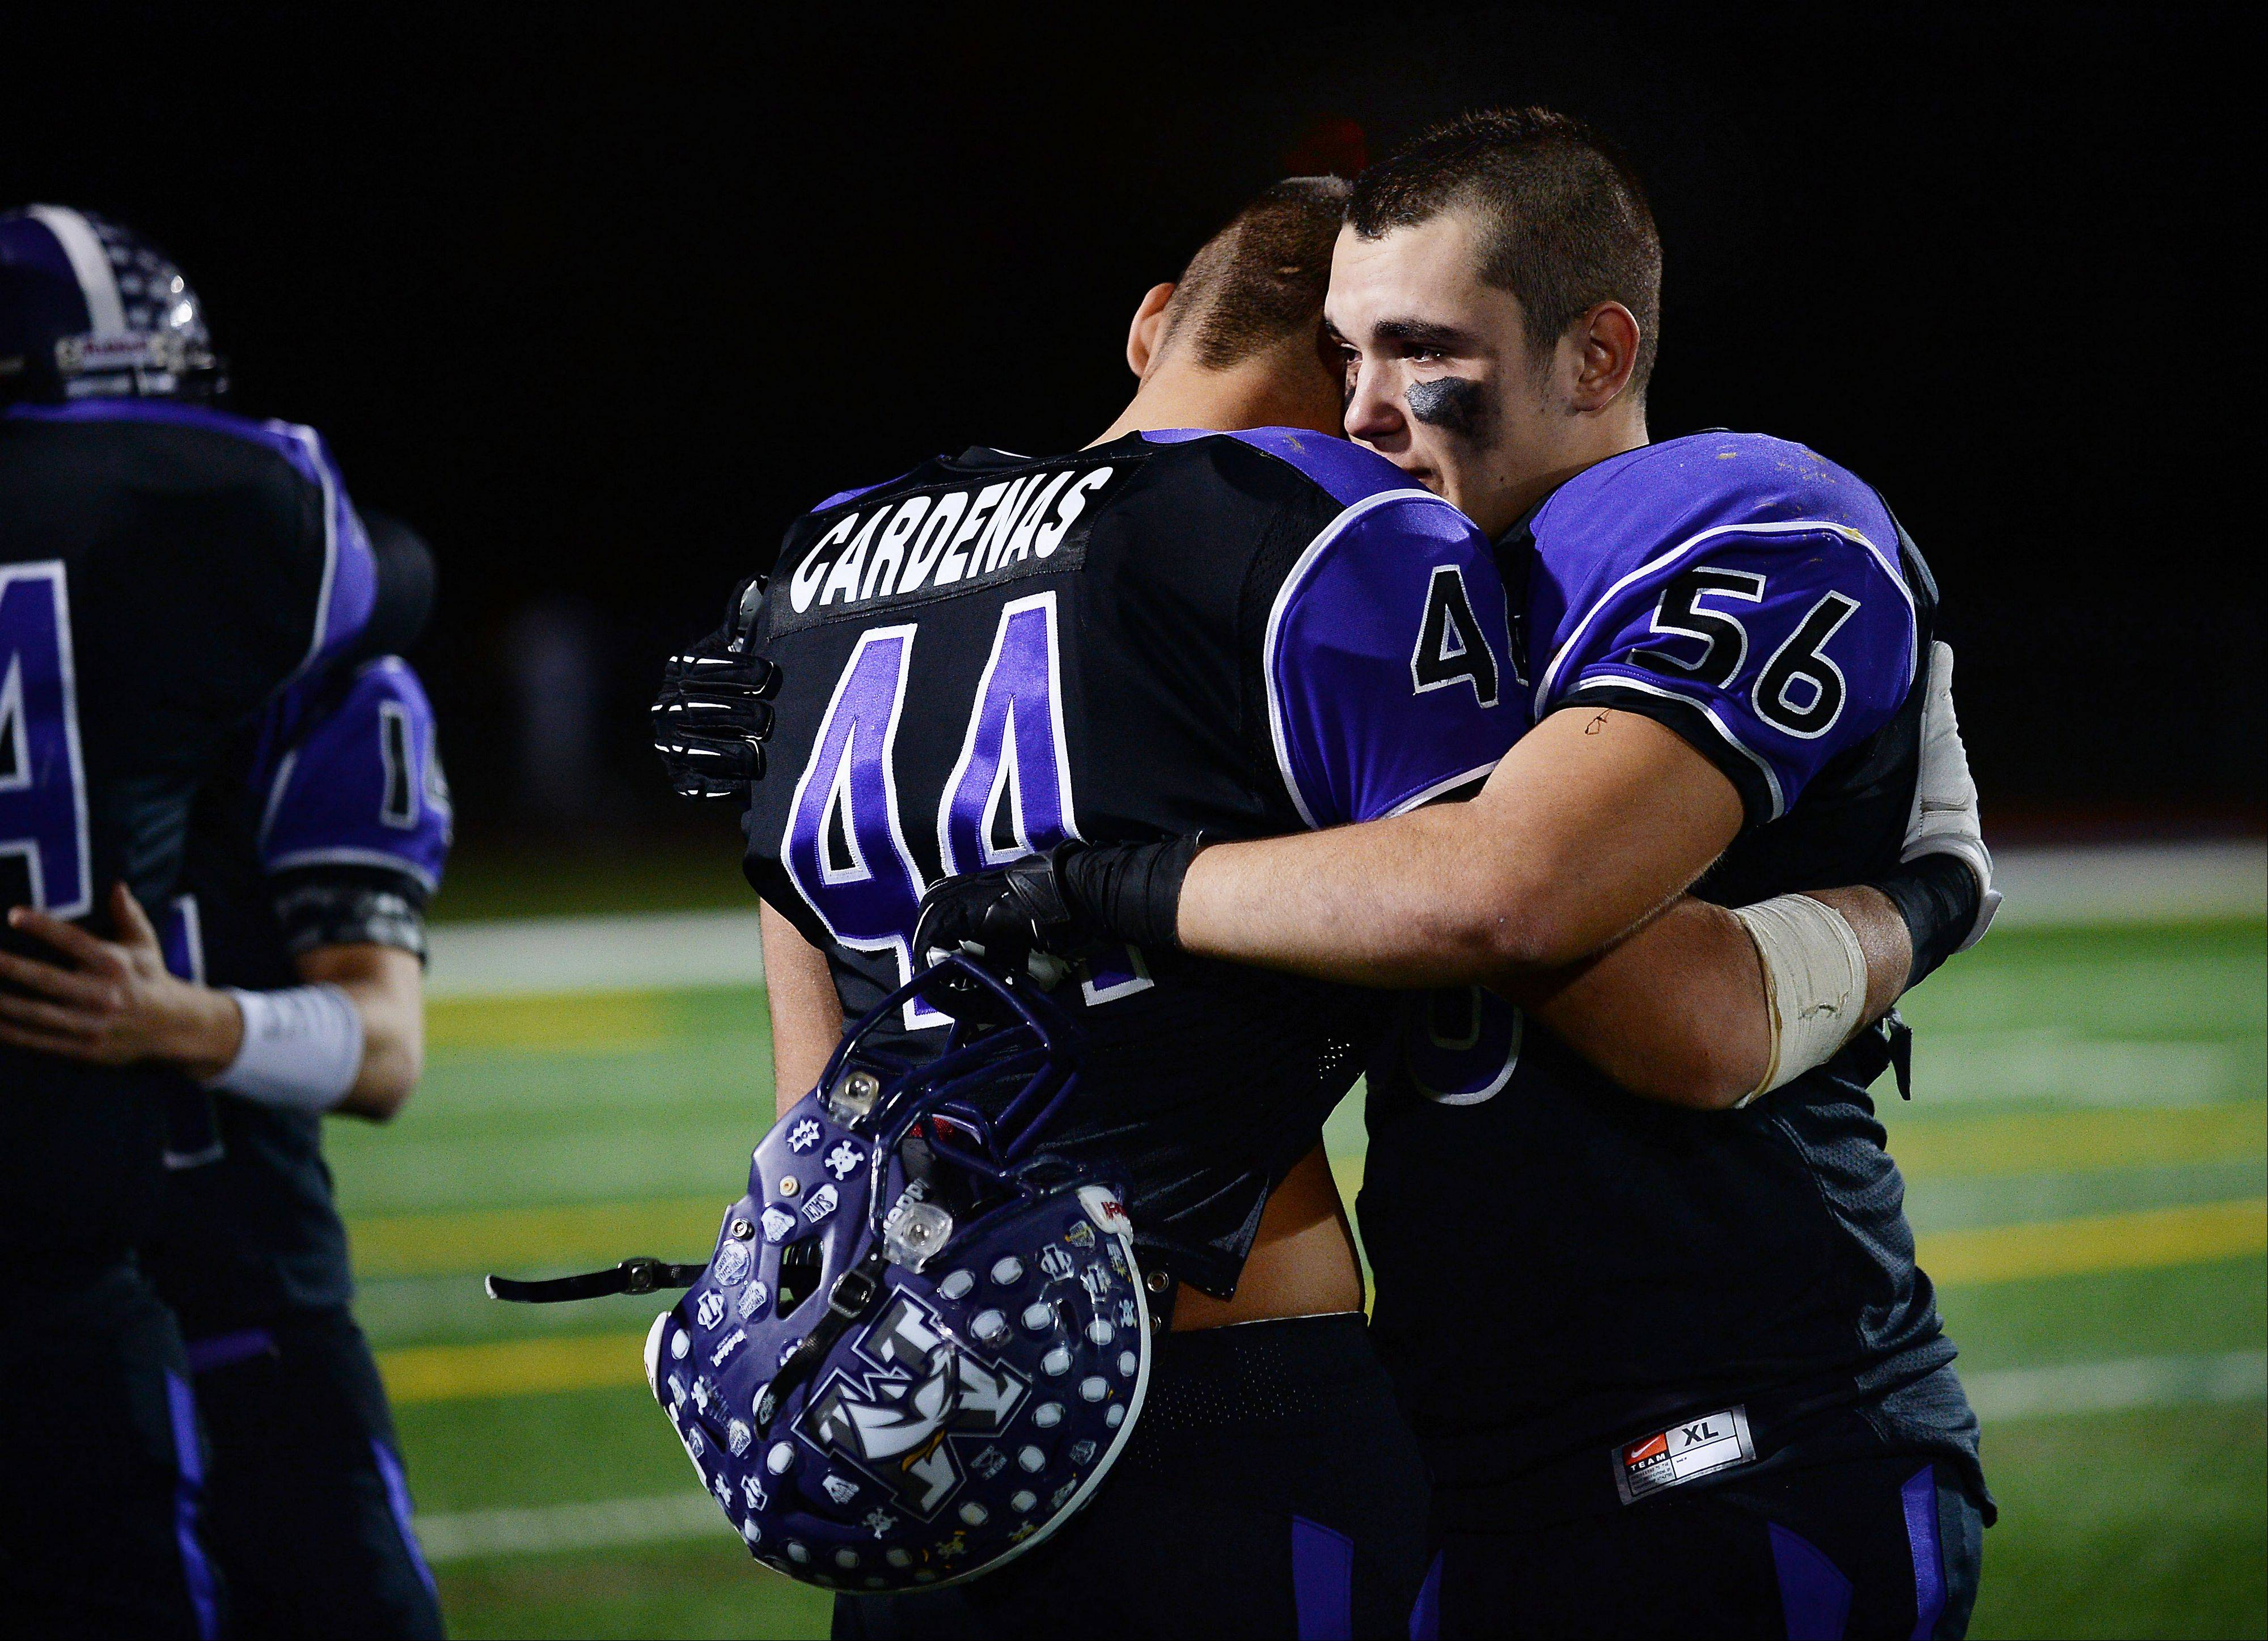 Rolling Meadows players Eddie Cardenas and George Someris come together as their season comes to an end with the loss to Batavia at Rolling Meadows High School on Saturday.